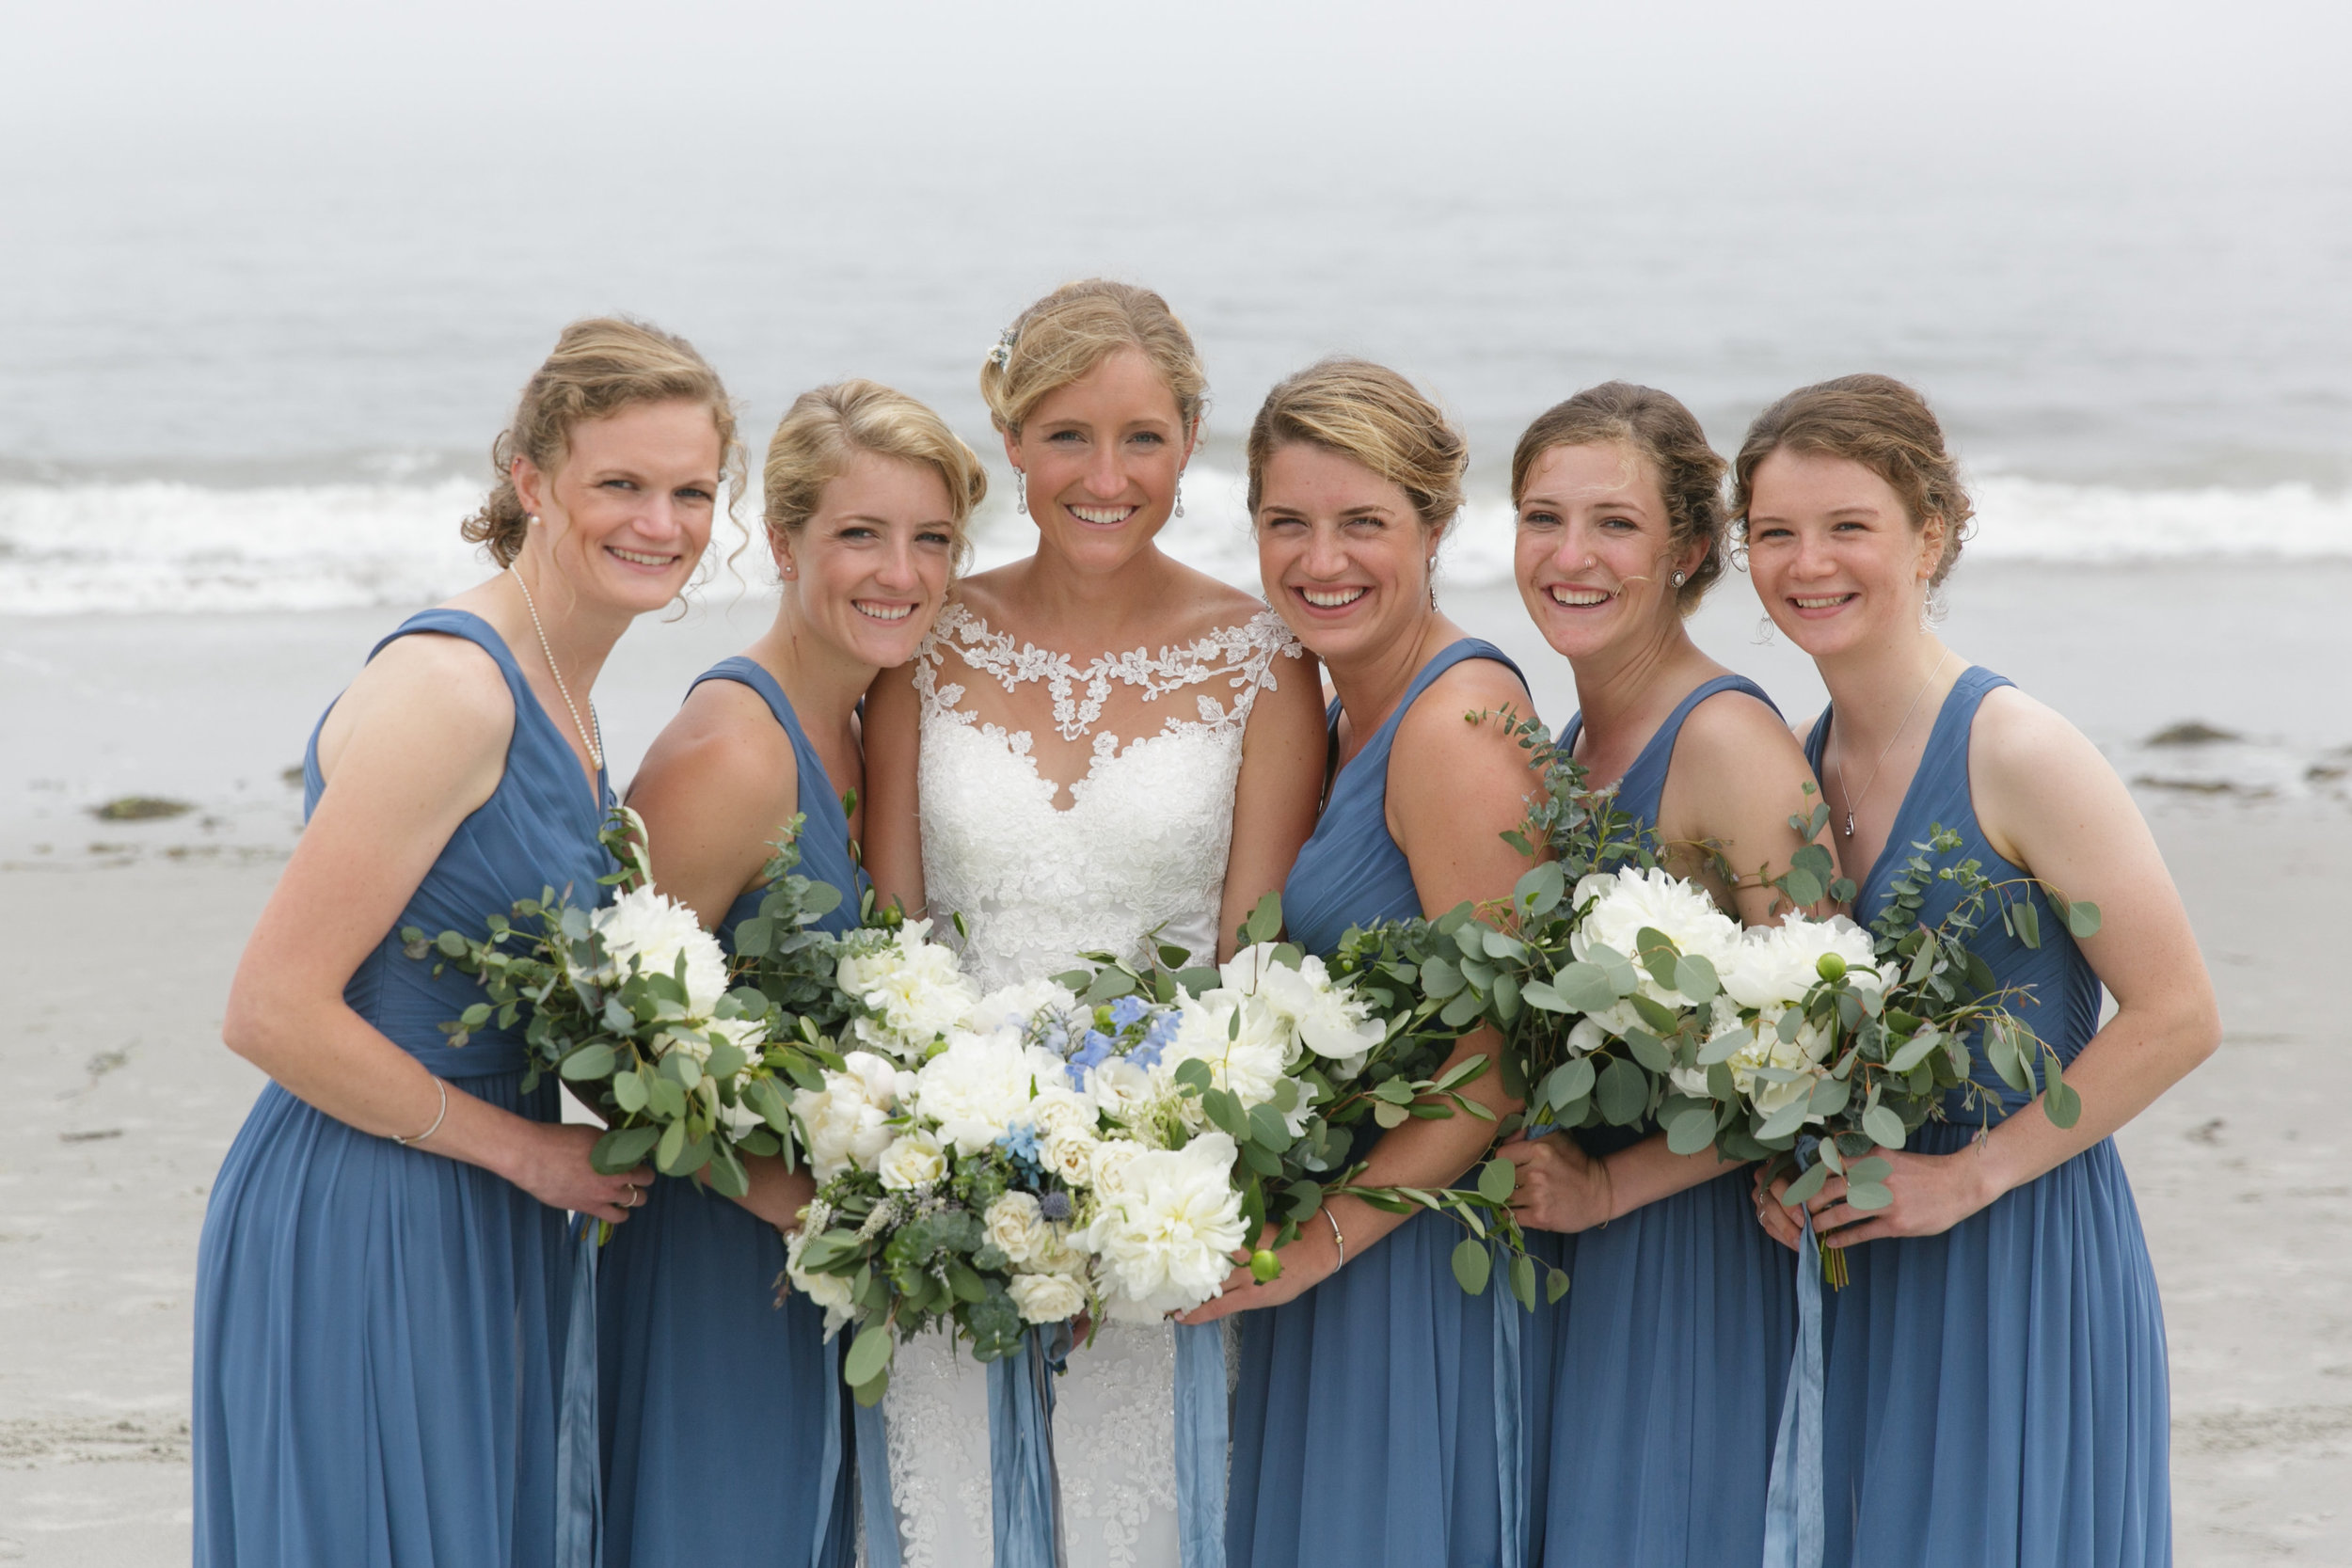 Watershed-Floral-Maine-Wedding-Bridal-Bridesmaid-Bouquet (1).jpg